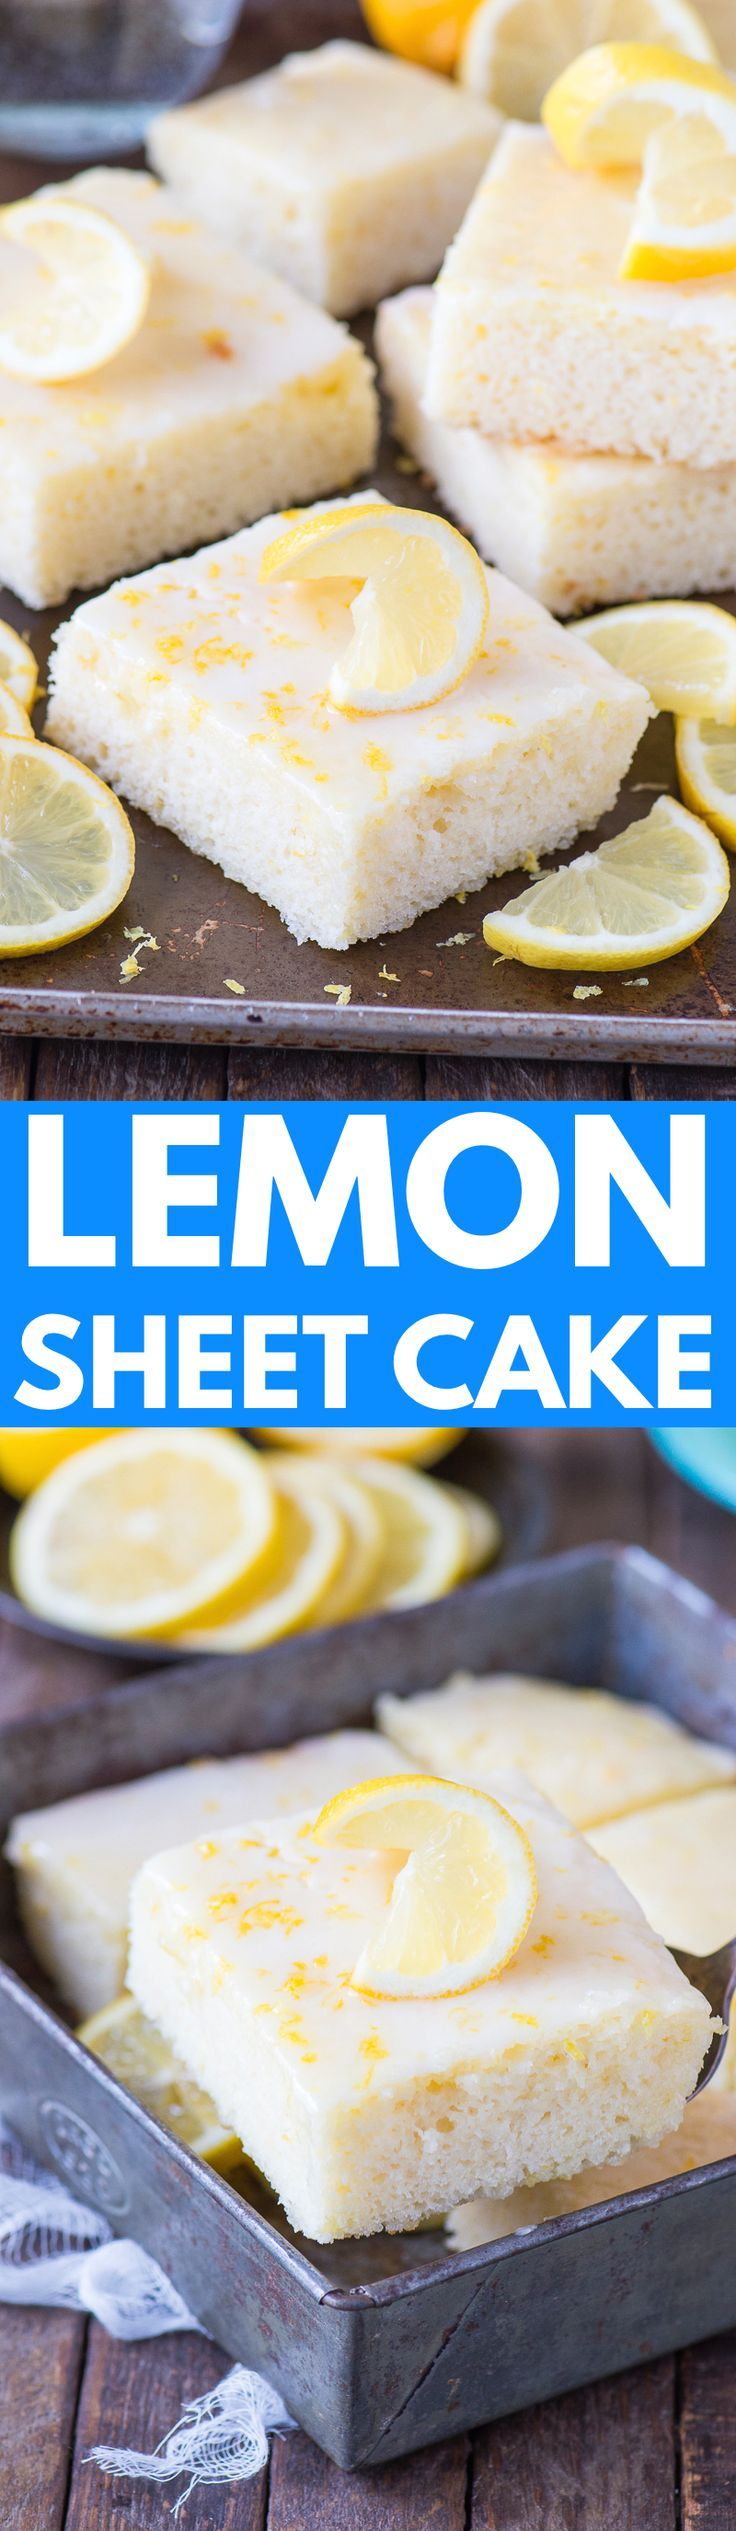 Easy lemon sheet cake recipe. The best lemon cake made in a 9x13 inch pan with a fresh and quick lemon glaze!